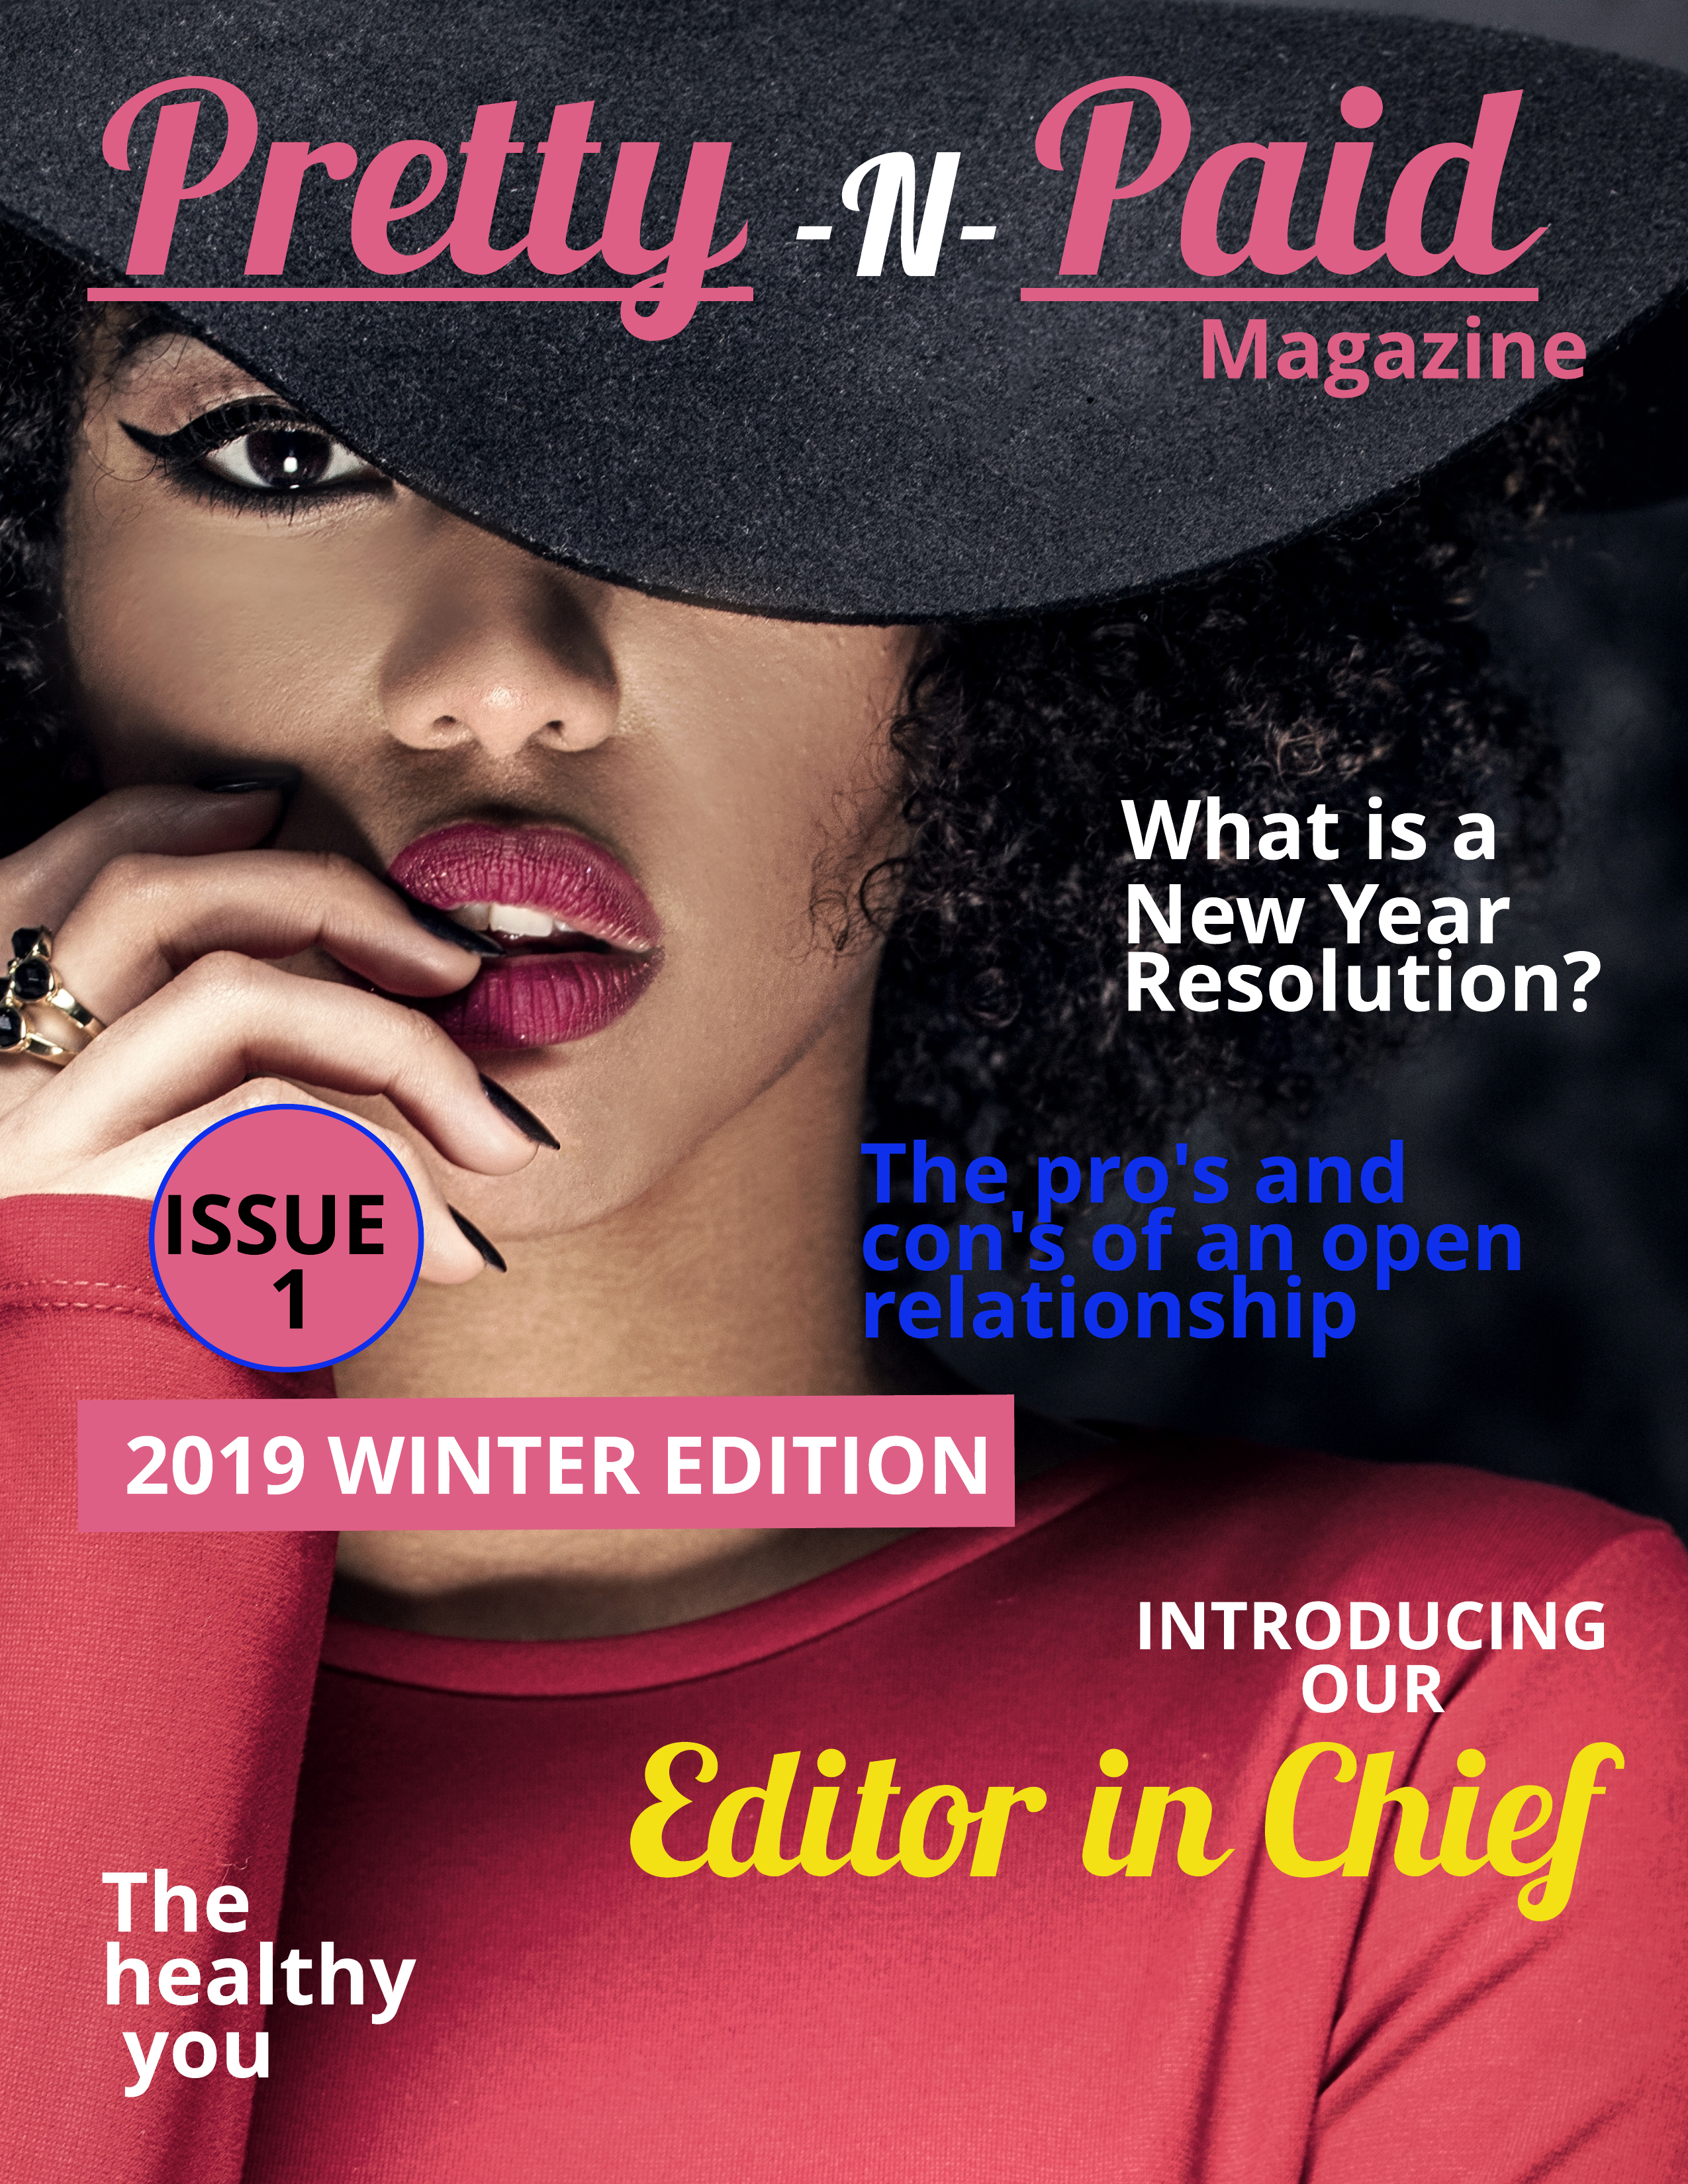 pnpmcover2